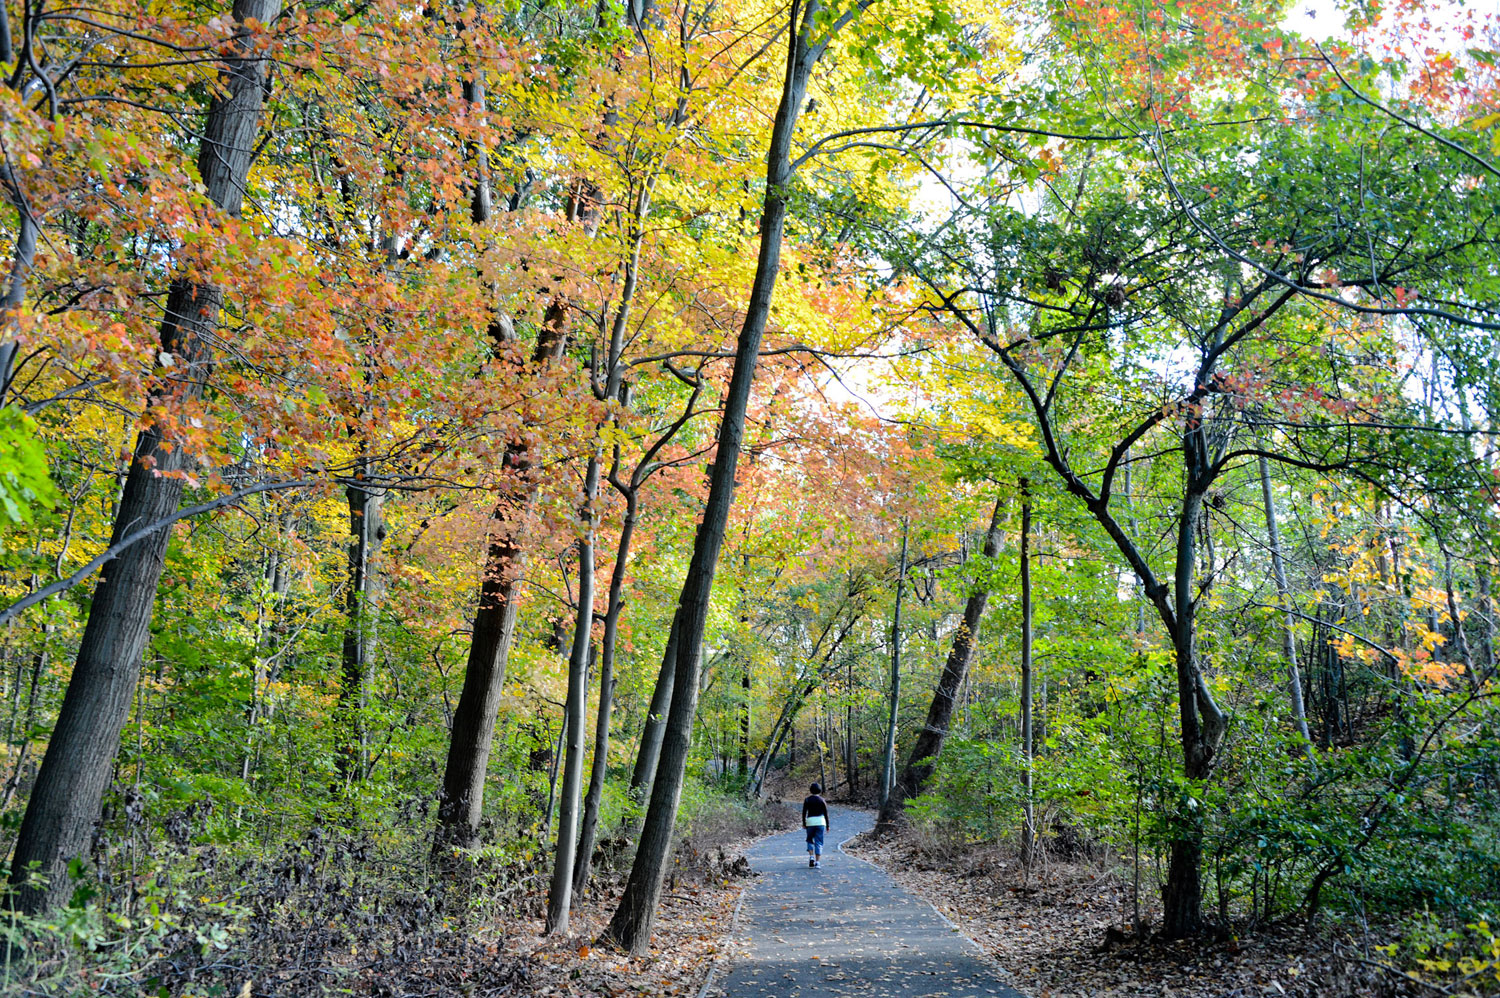 Fall Foliage in Parks : NYC Parks